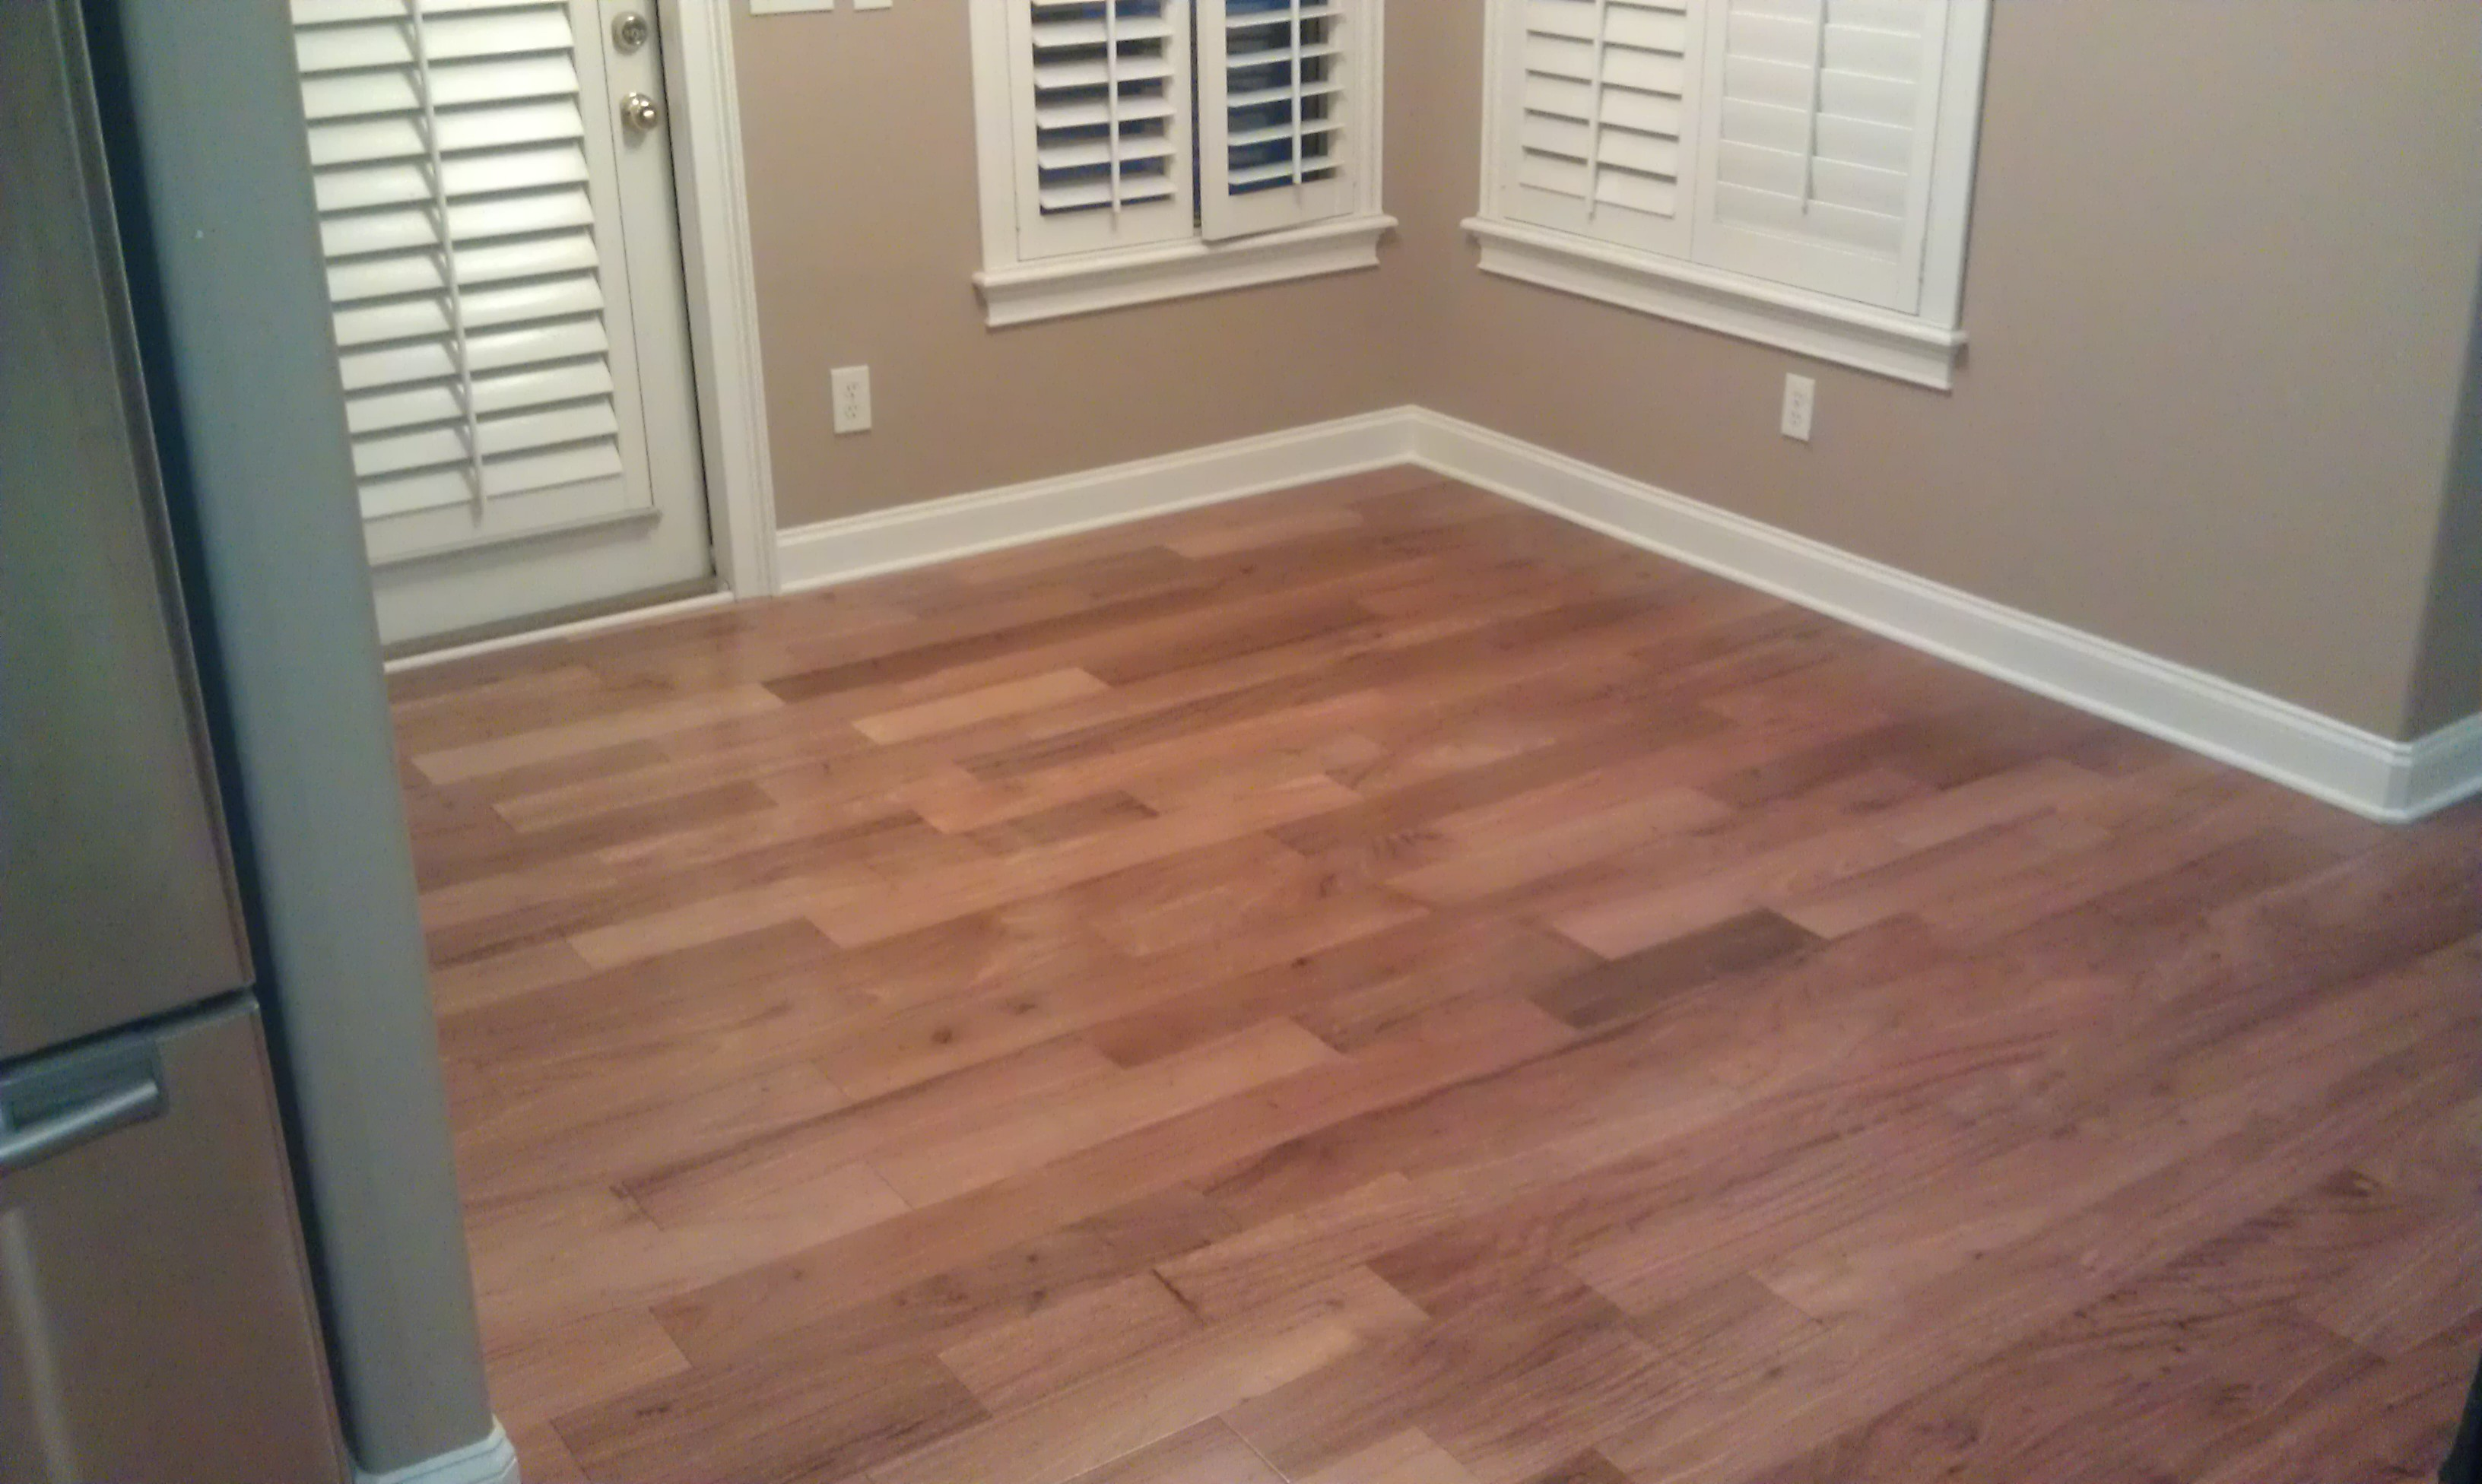 Laminate flooring in jacksonville for home renovations for In home flooring